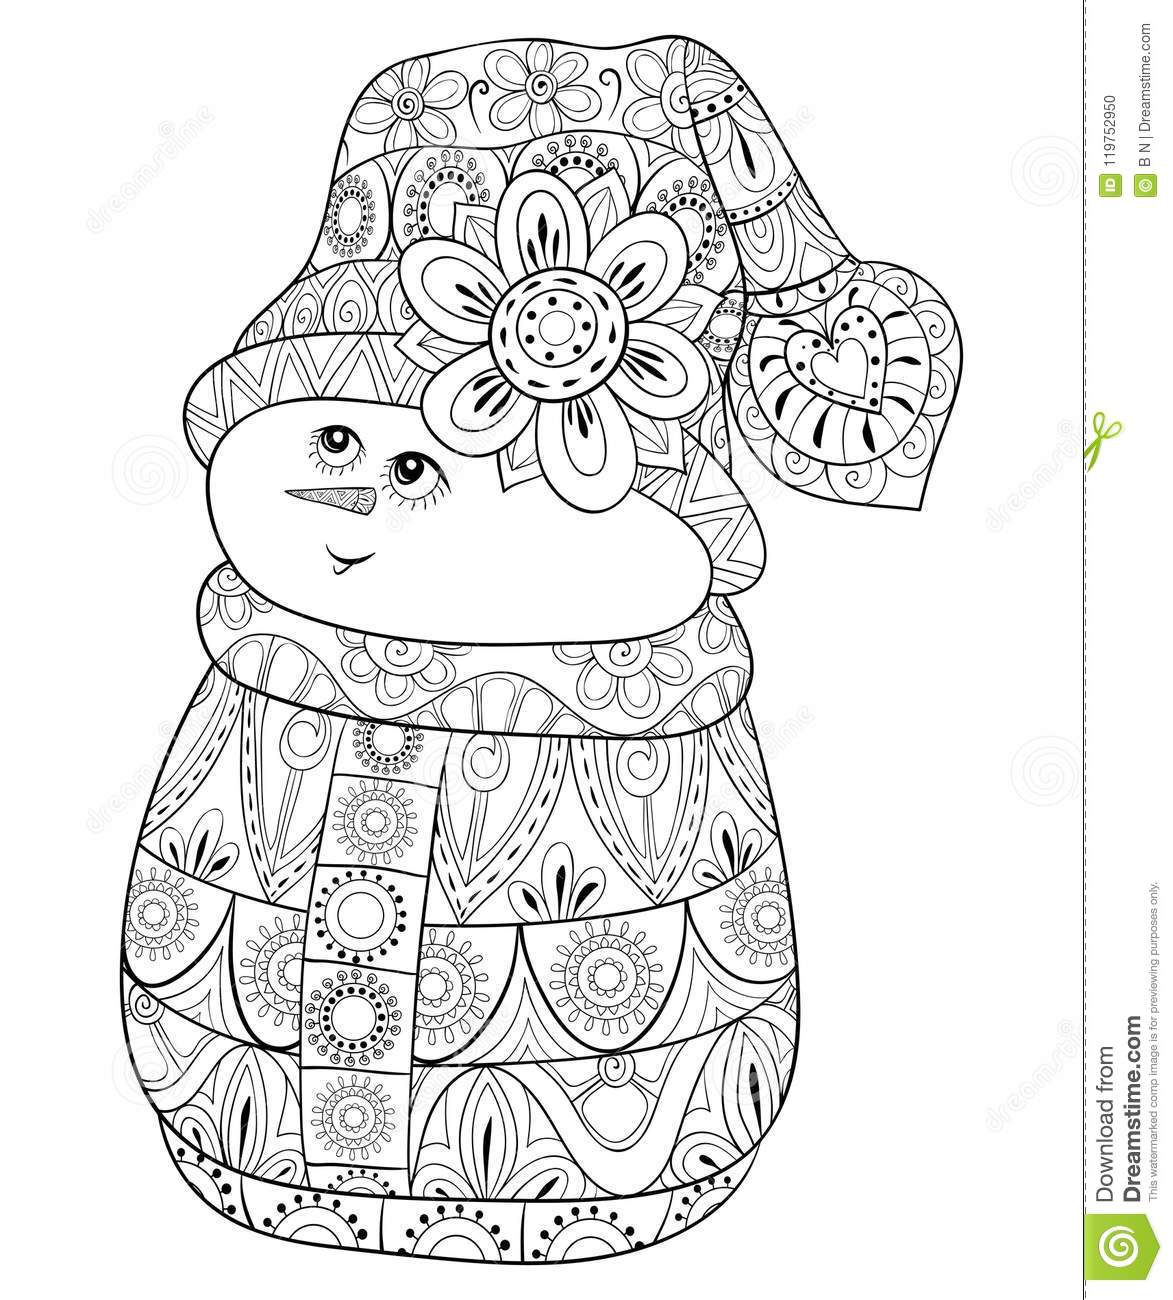 Adult Coloring Book Page A Cute Snowman For Relaxing Zen